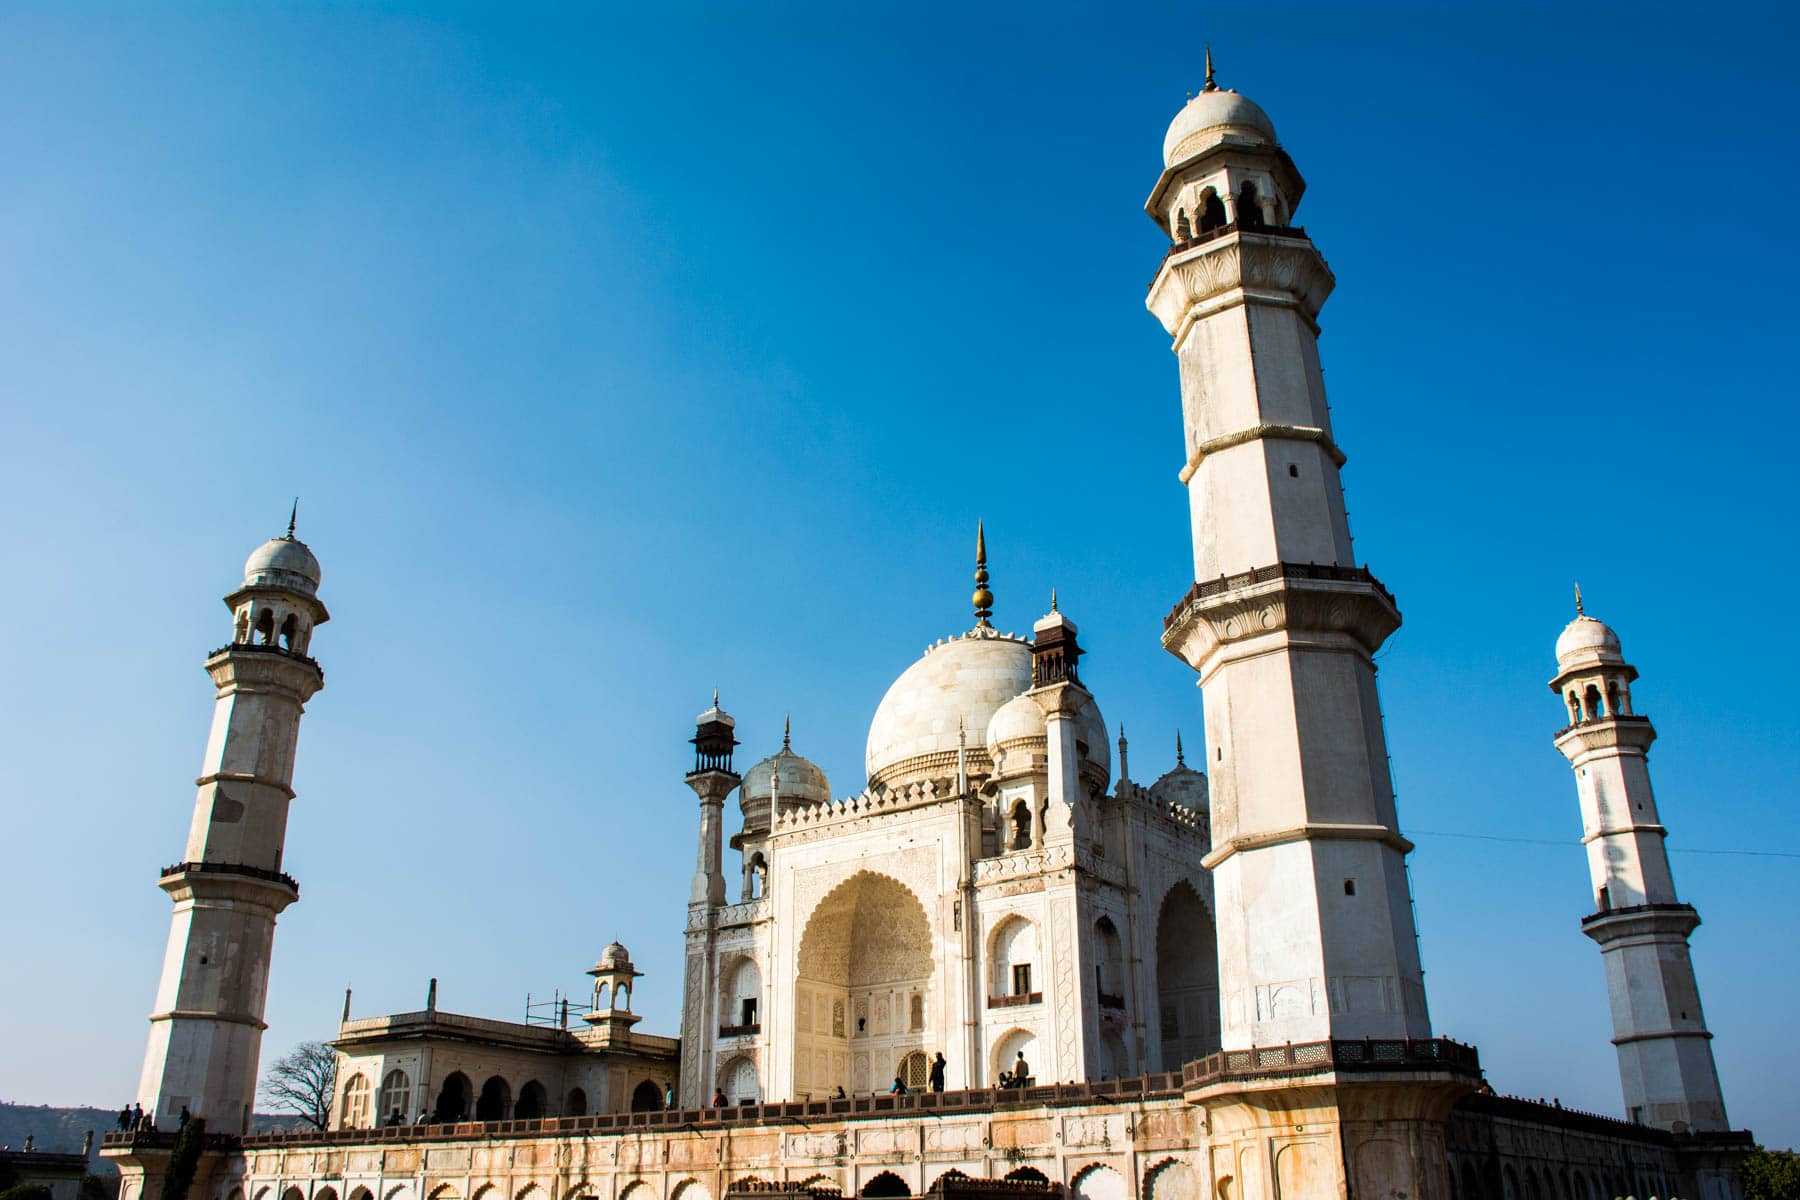 Why dual pricing is unfair - The Bibi Ka Maqbara in Aurangabad, India - Lost With Purpose